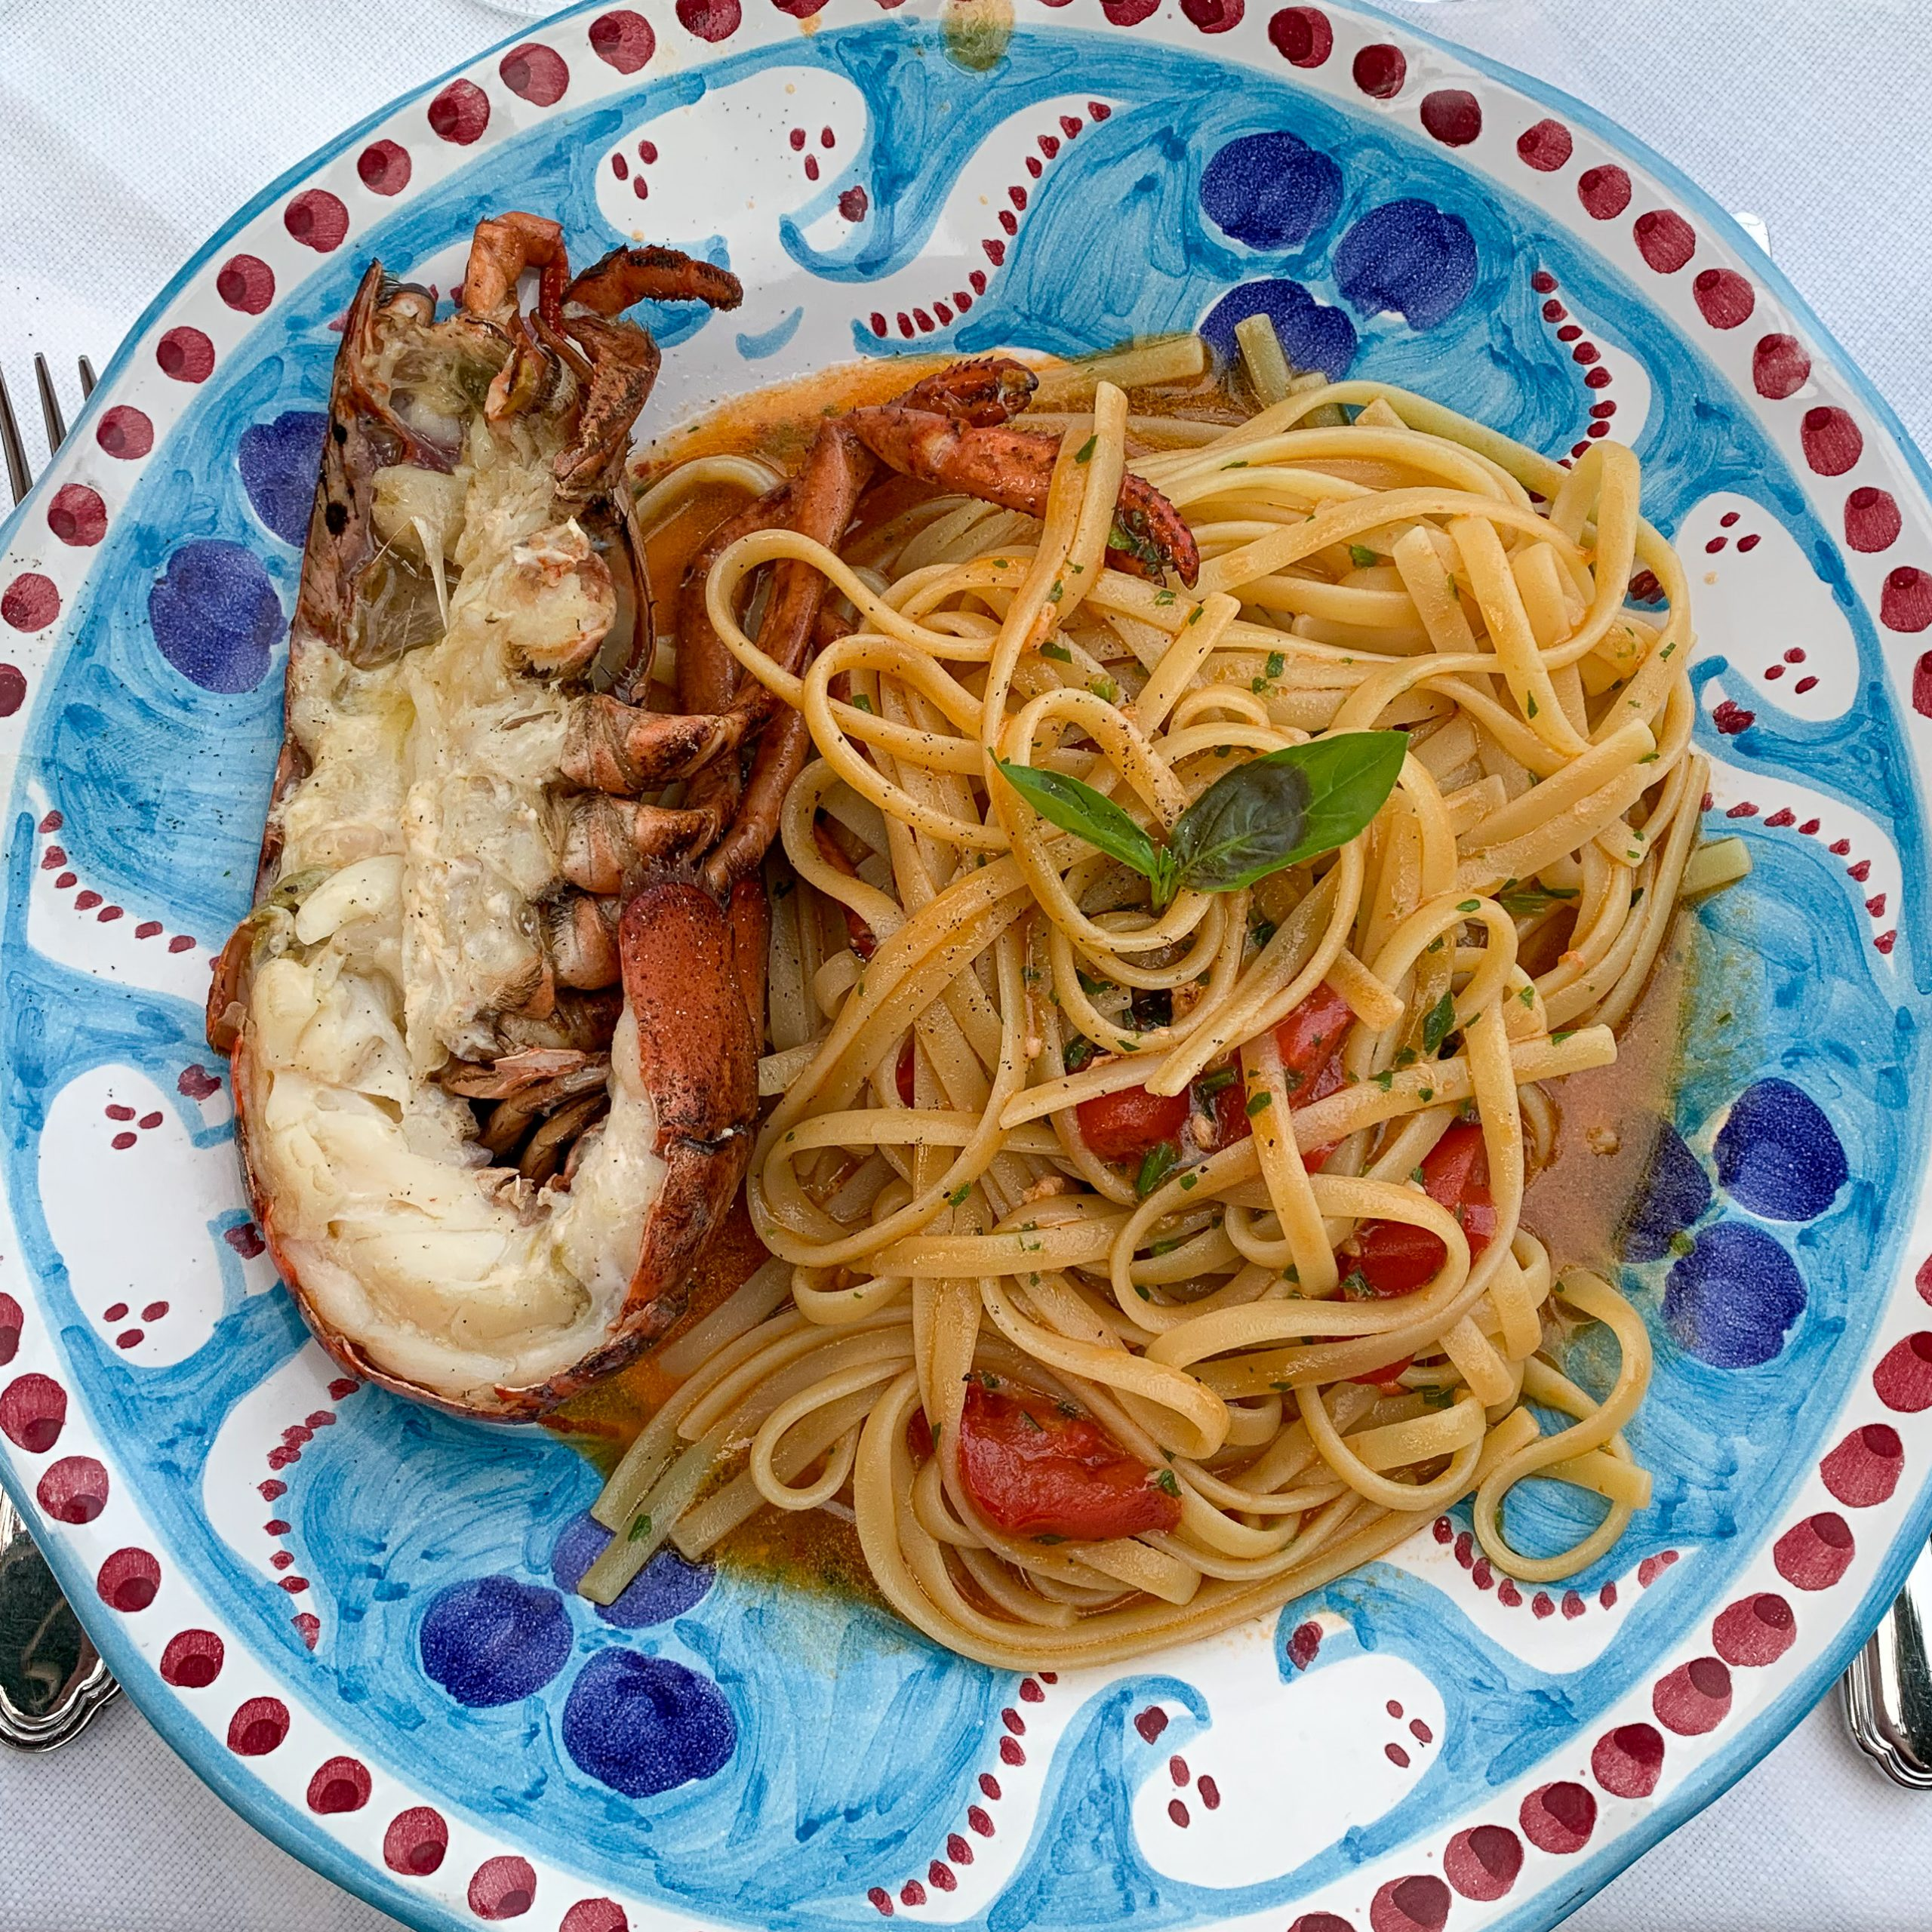 Positano restaurants are SO GOOD! But some are overpriced. Here's a few winners you can't miss!